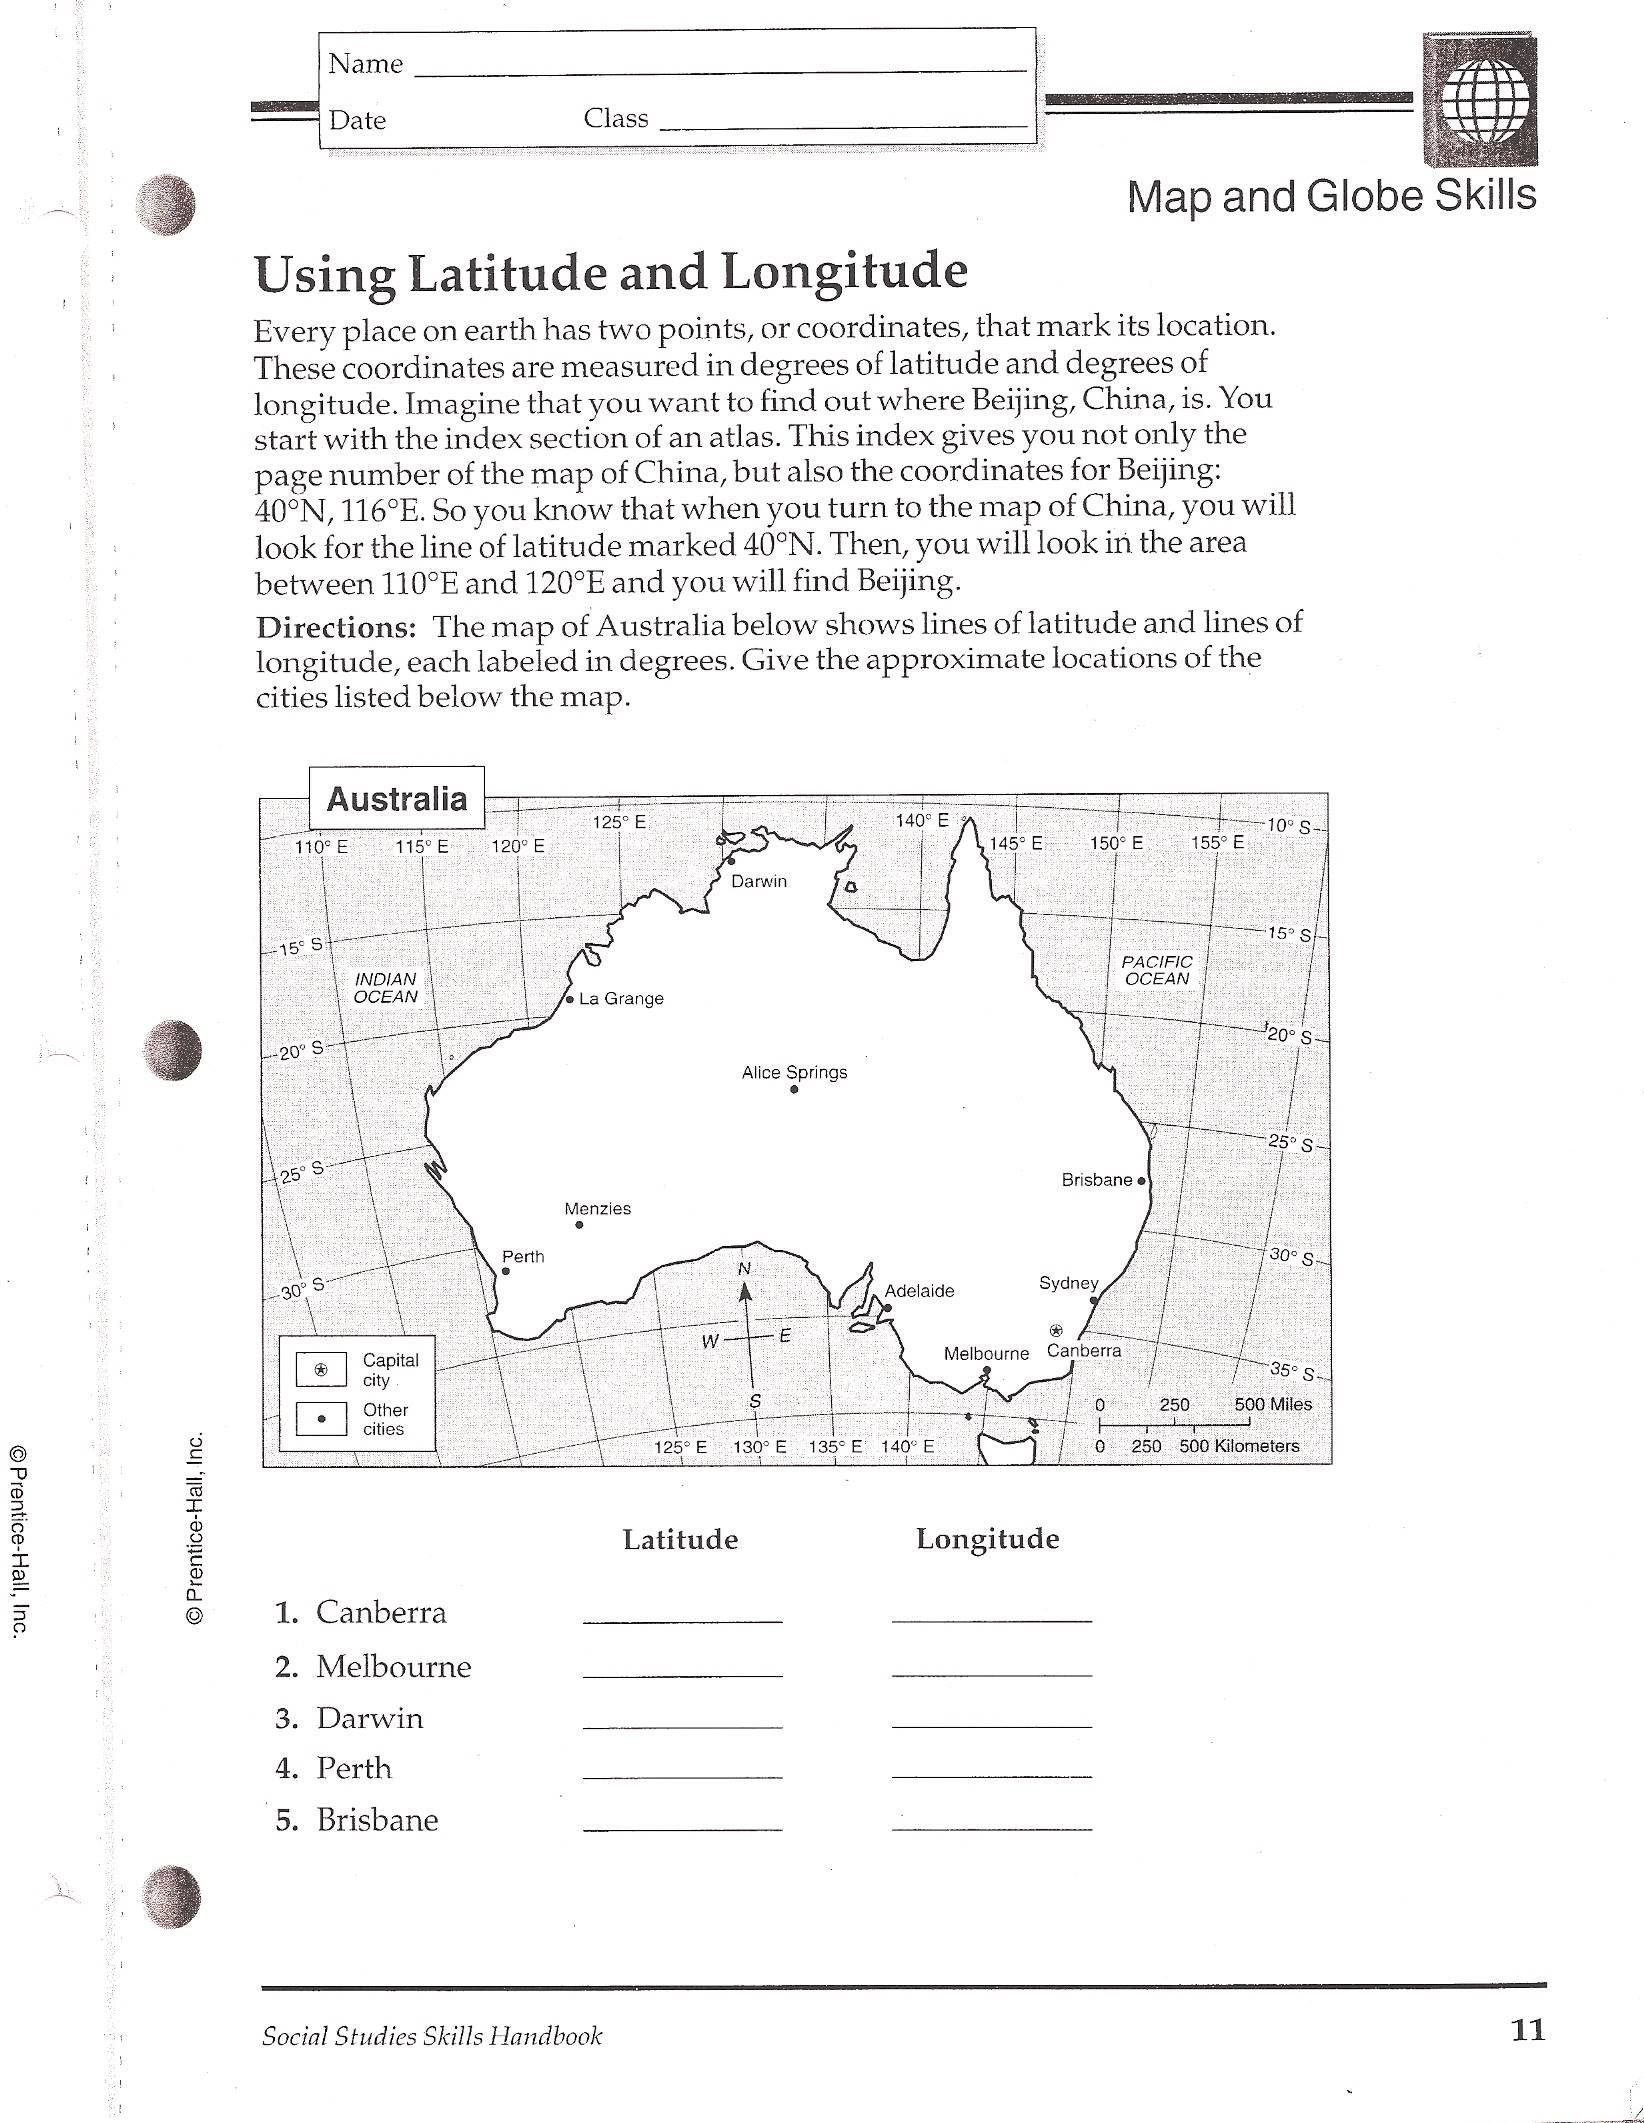 Worksheets Latitude And Longitude Worksheets 6th Grade social studies skills measurement worksheets and latitude longitudequiz